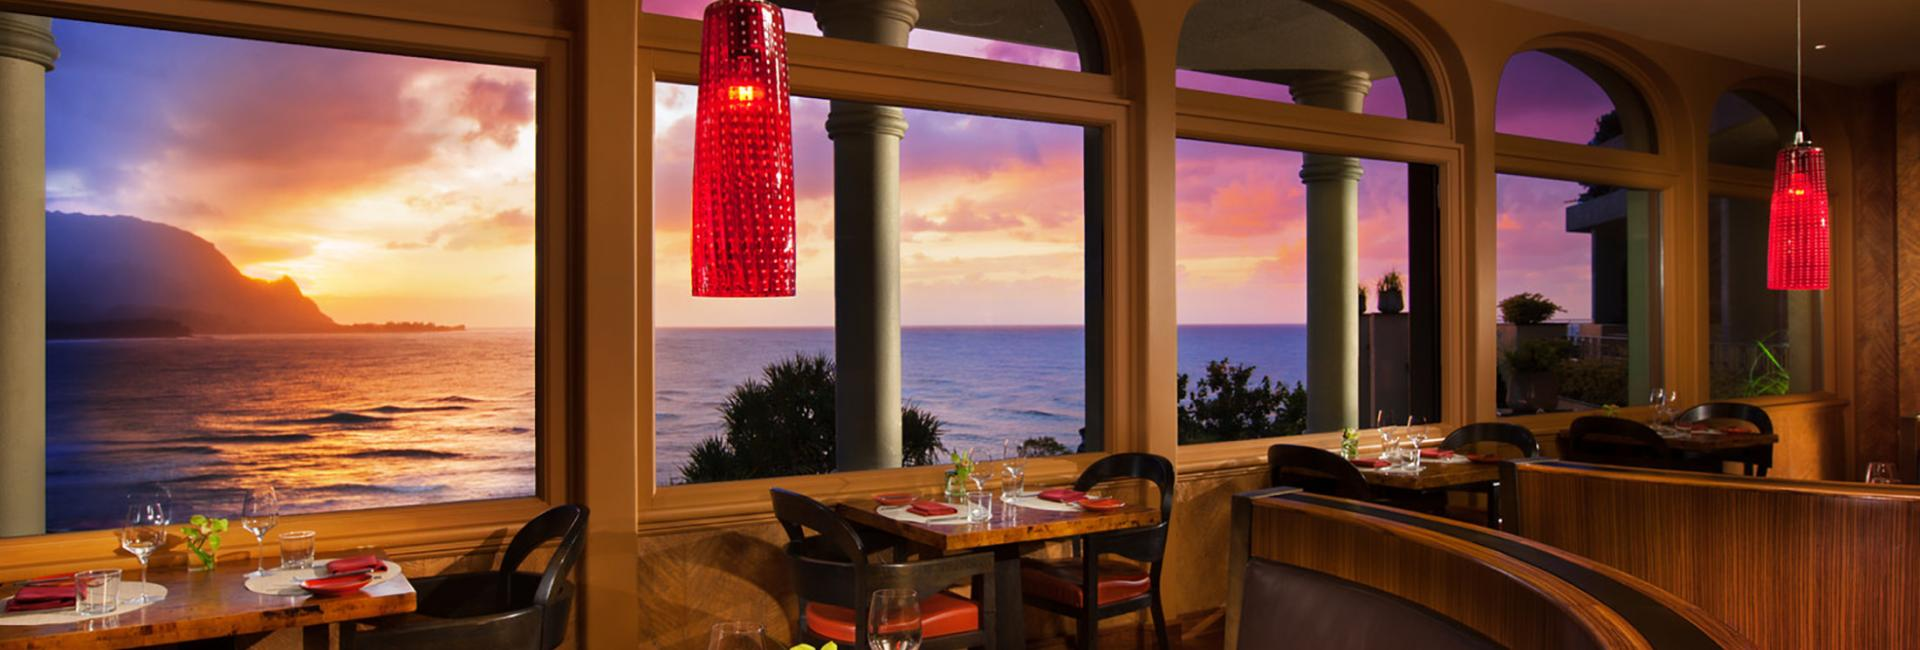 Tables set in the dining area of the Kauai Grill overlooking the ocean